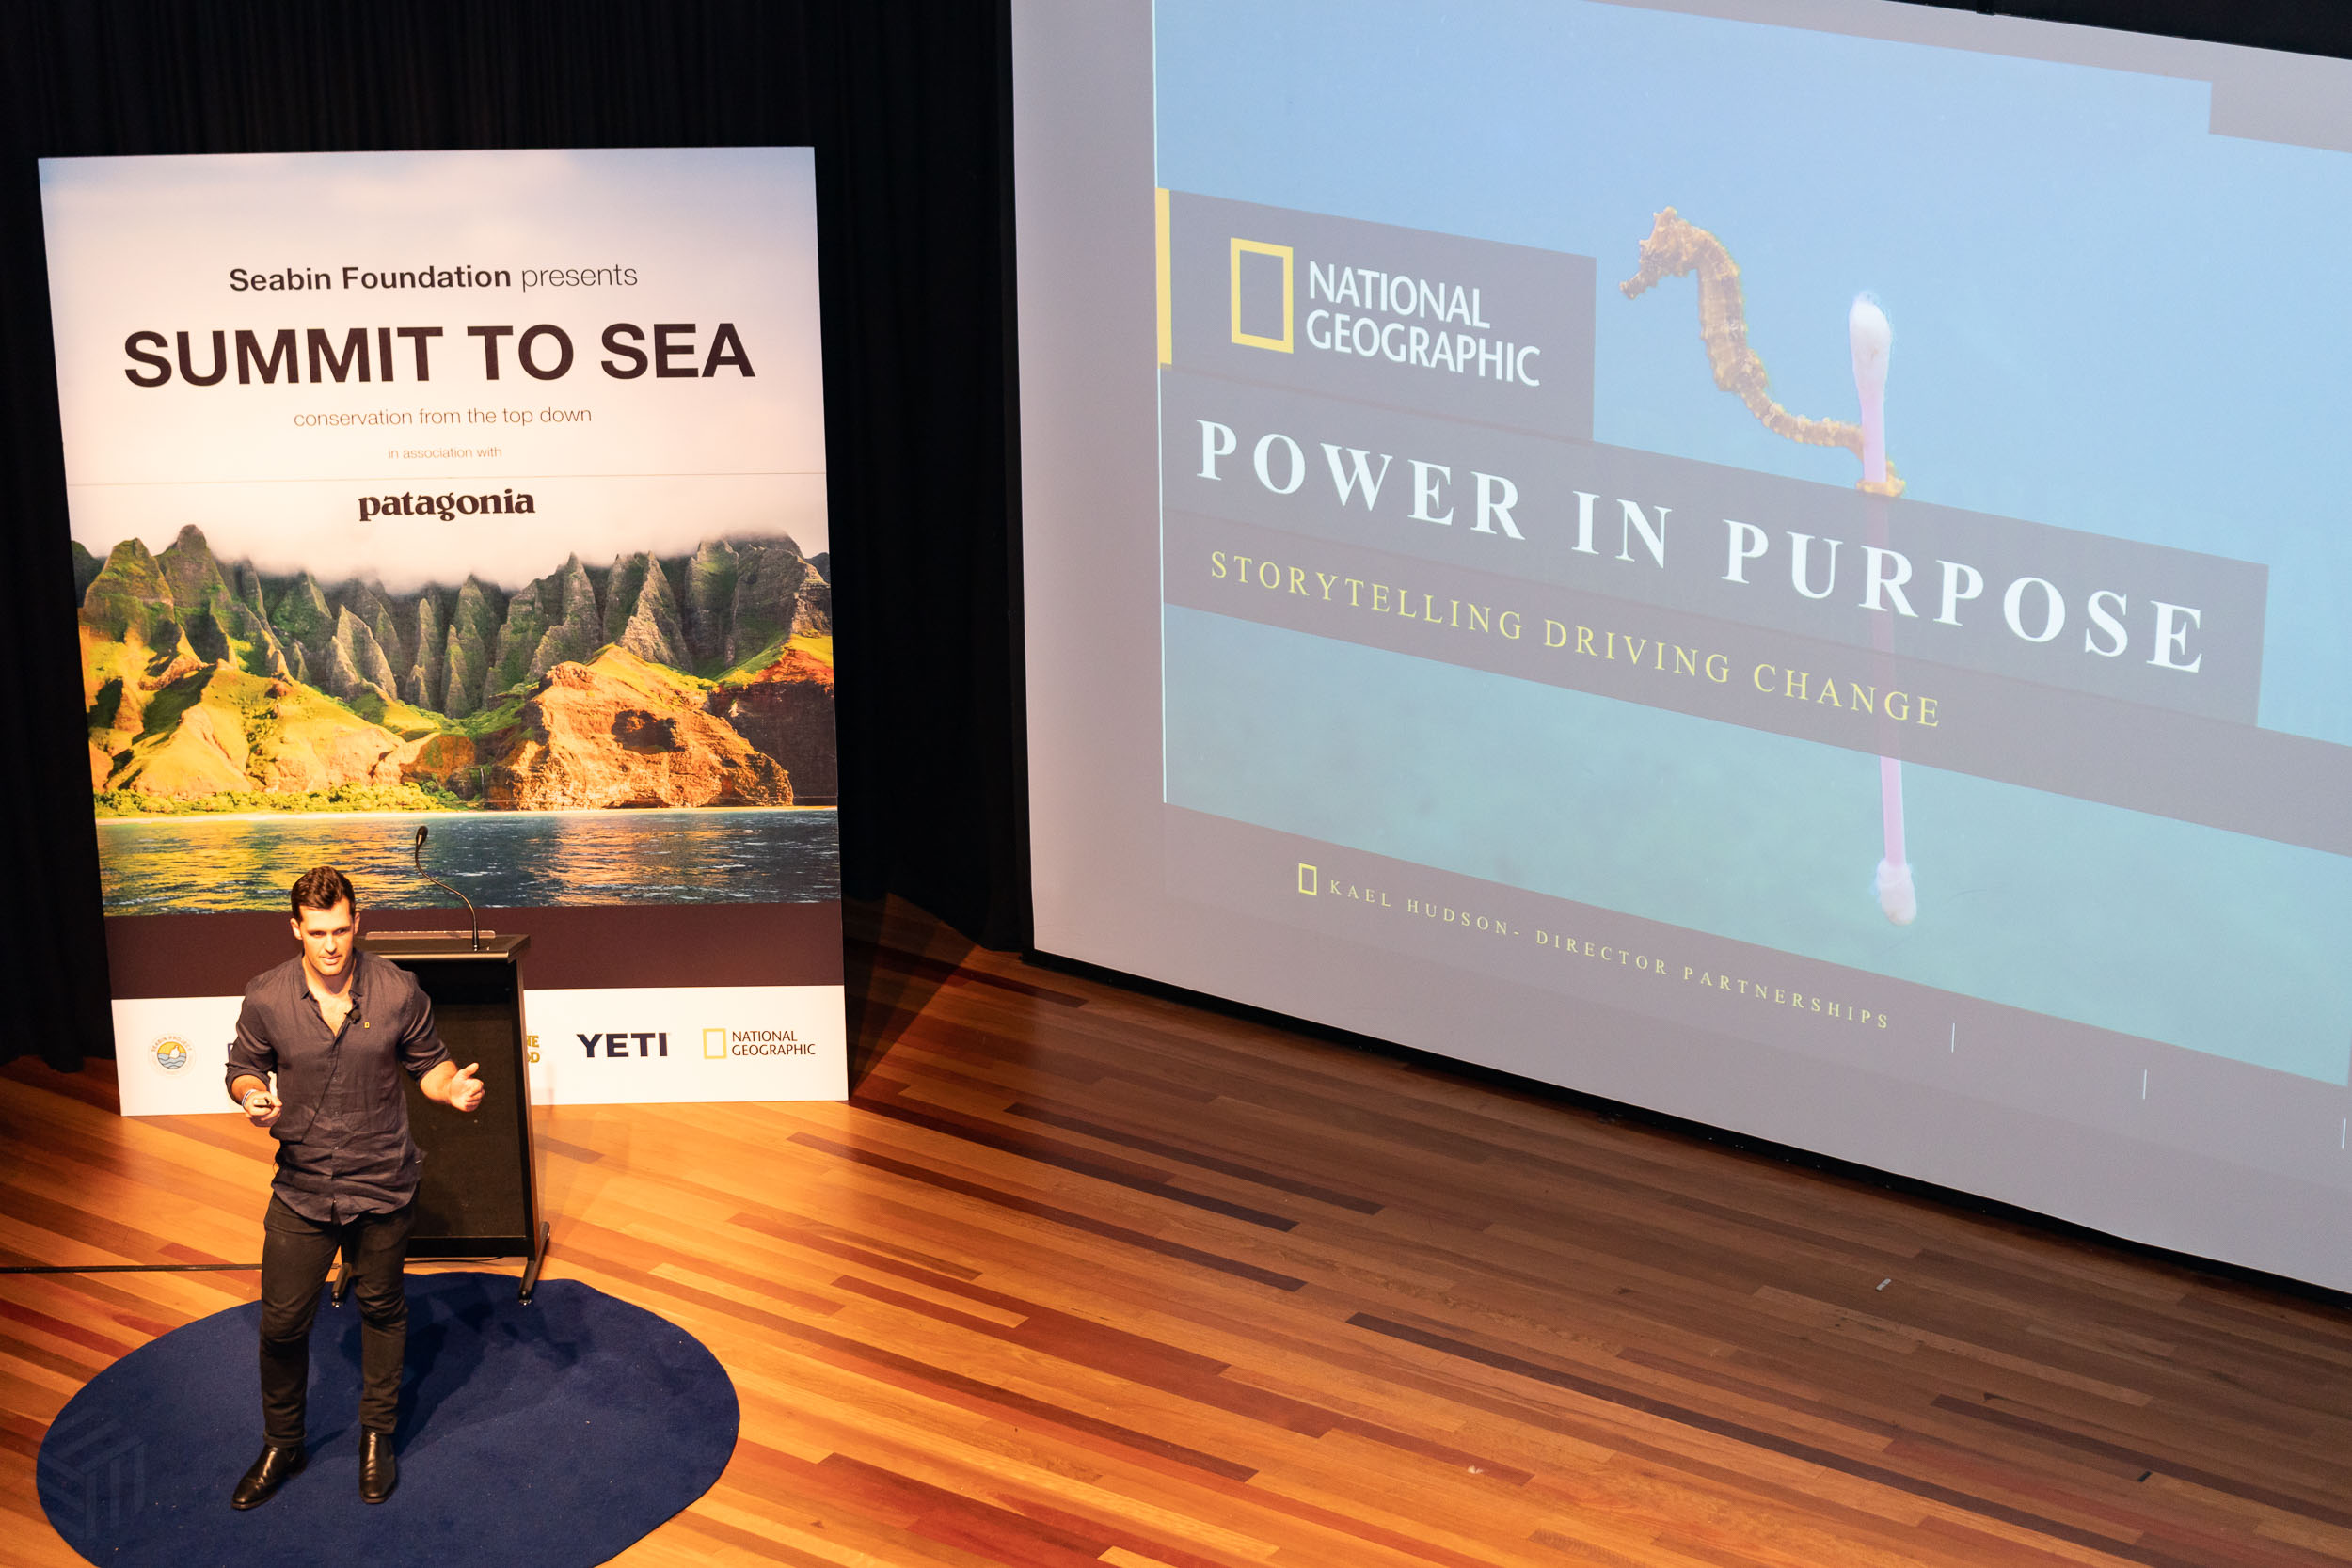 Kael Hudson, director of partnerships from National Geographic presenting at the summit.